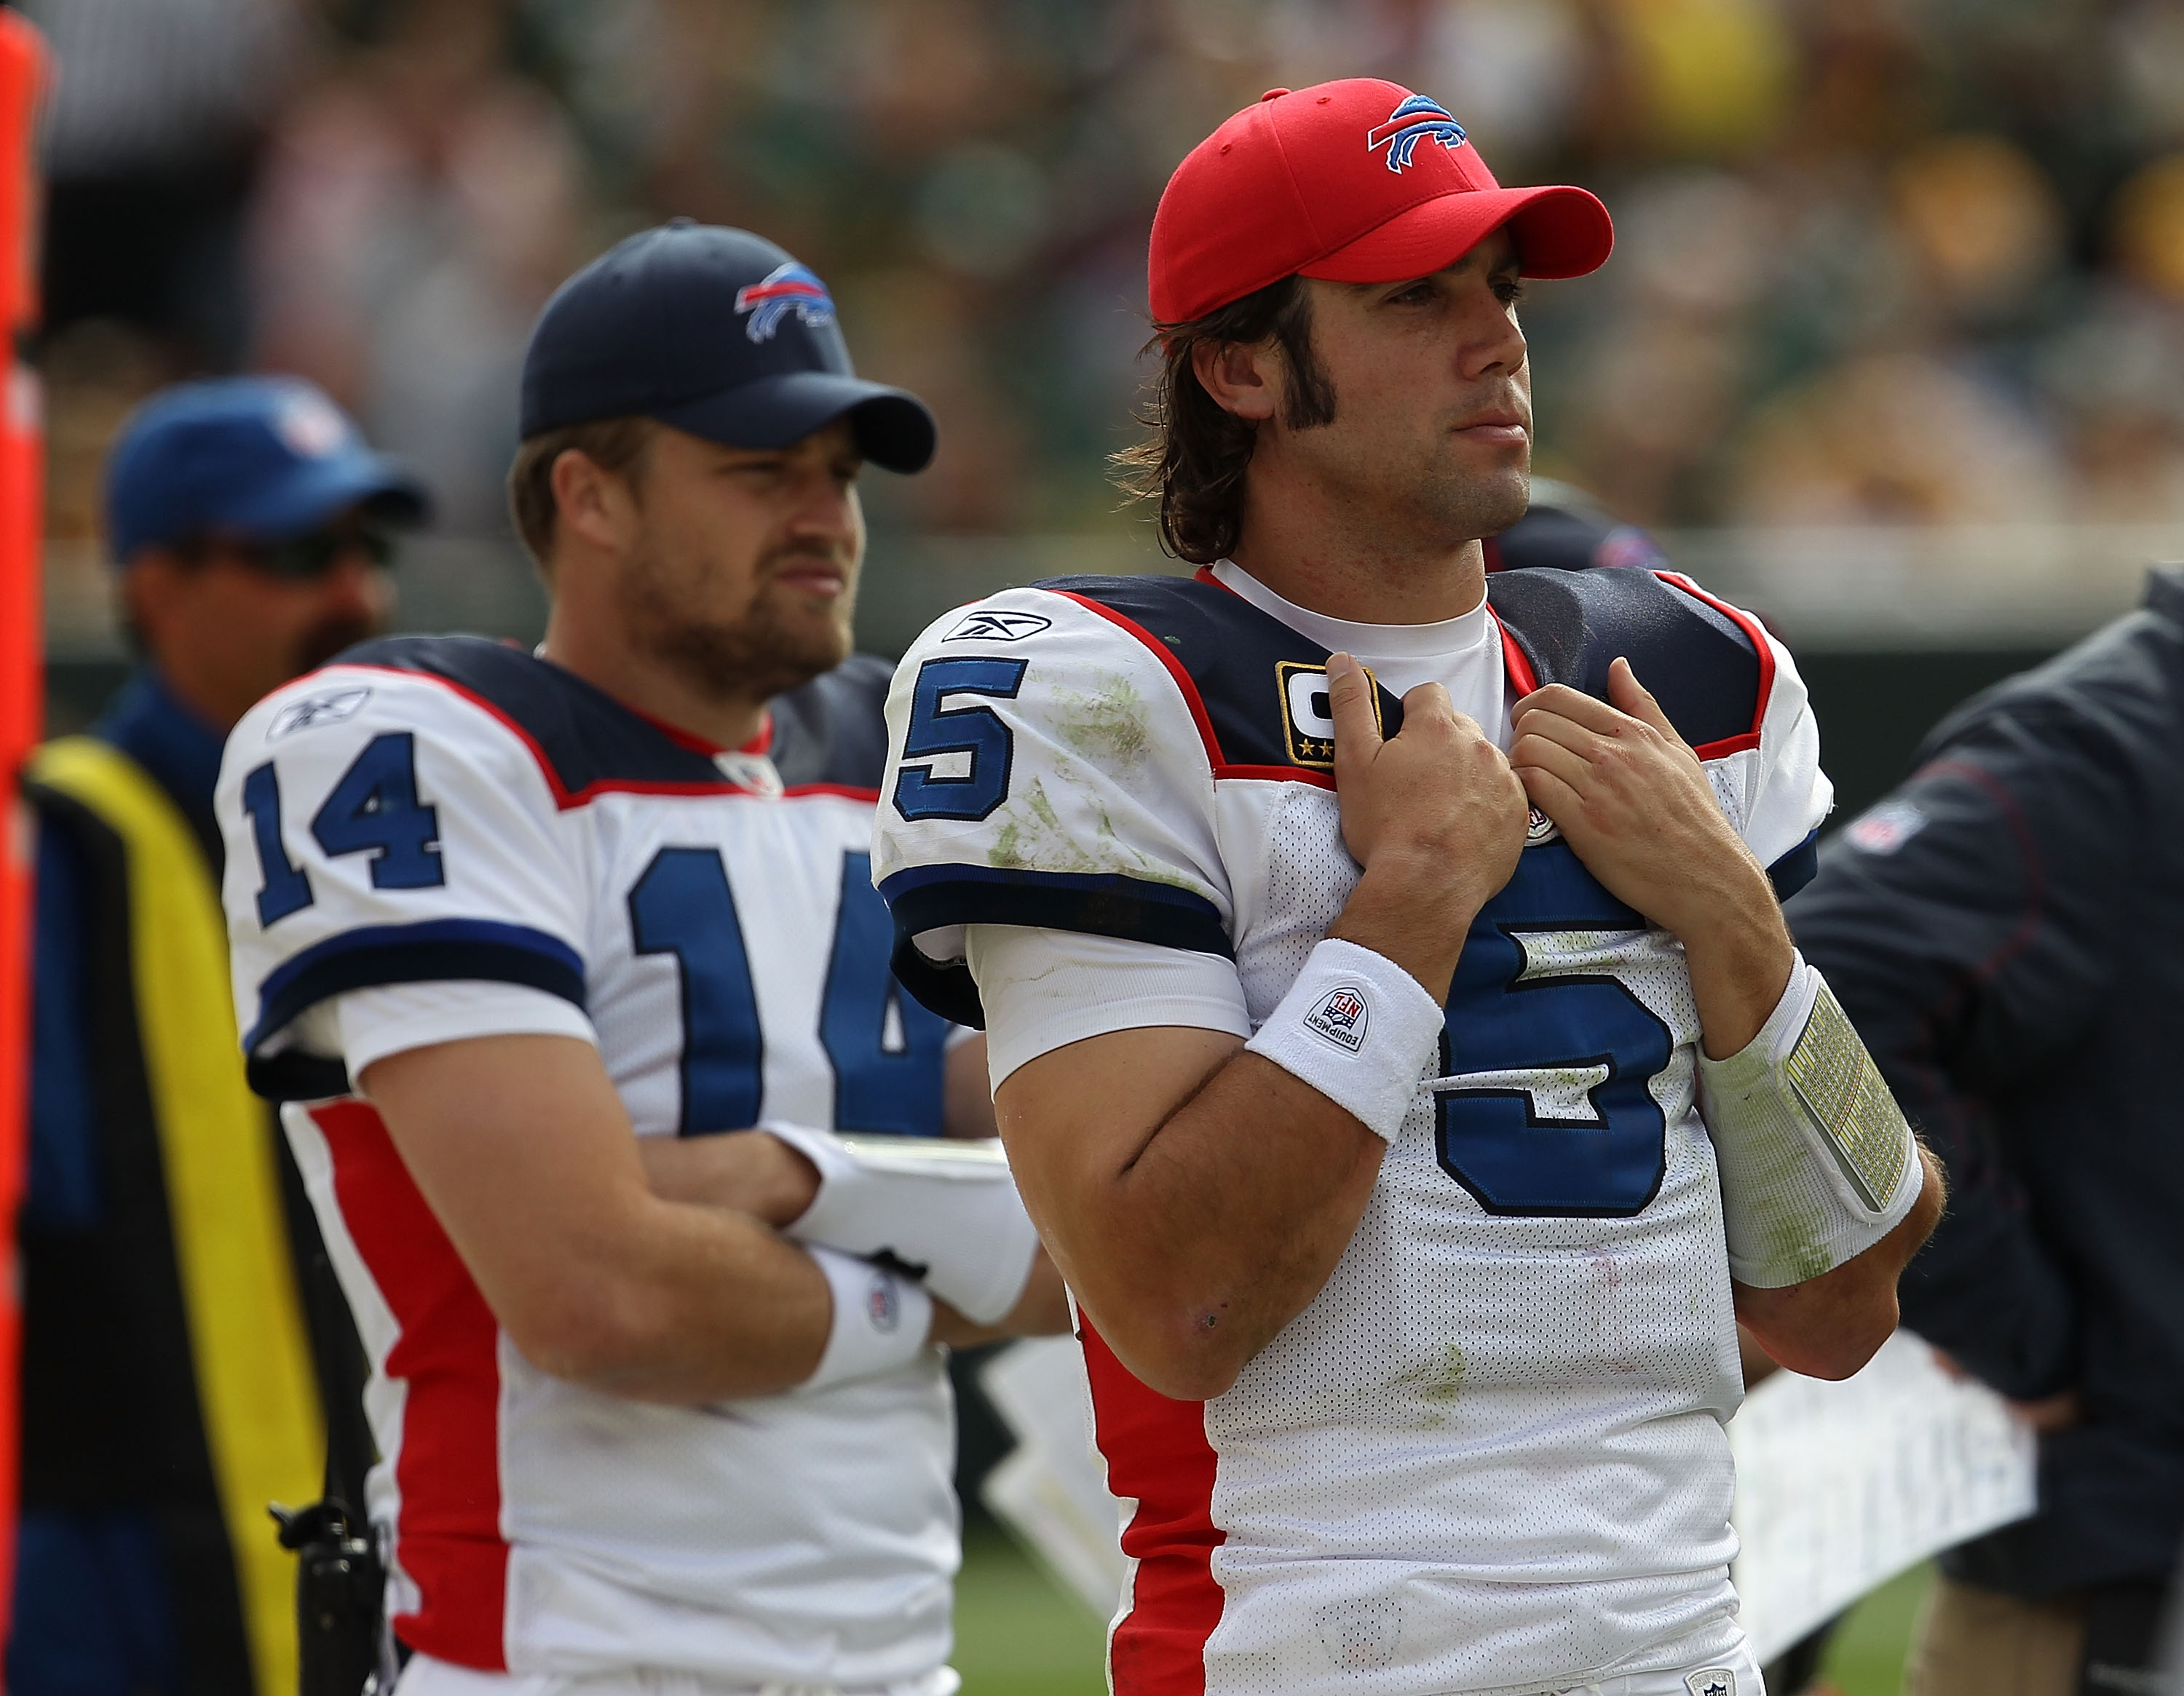 GREEN BAY, WI - SEPTEMBER 19: Ryan Fitzpatrick #14 and Trent Edwards #5 of the Buffalo Bills watch from the sidelines during a game against the Green Bay Packer at Lambeau Field on September 19, 2010 in Green Bay, Wisconsin. The Packers defeated the Bills